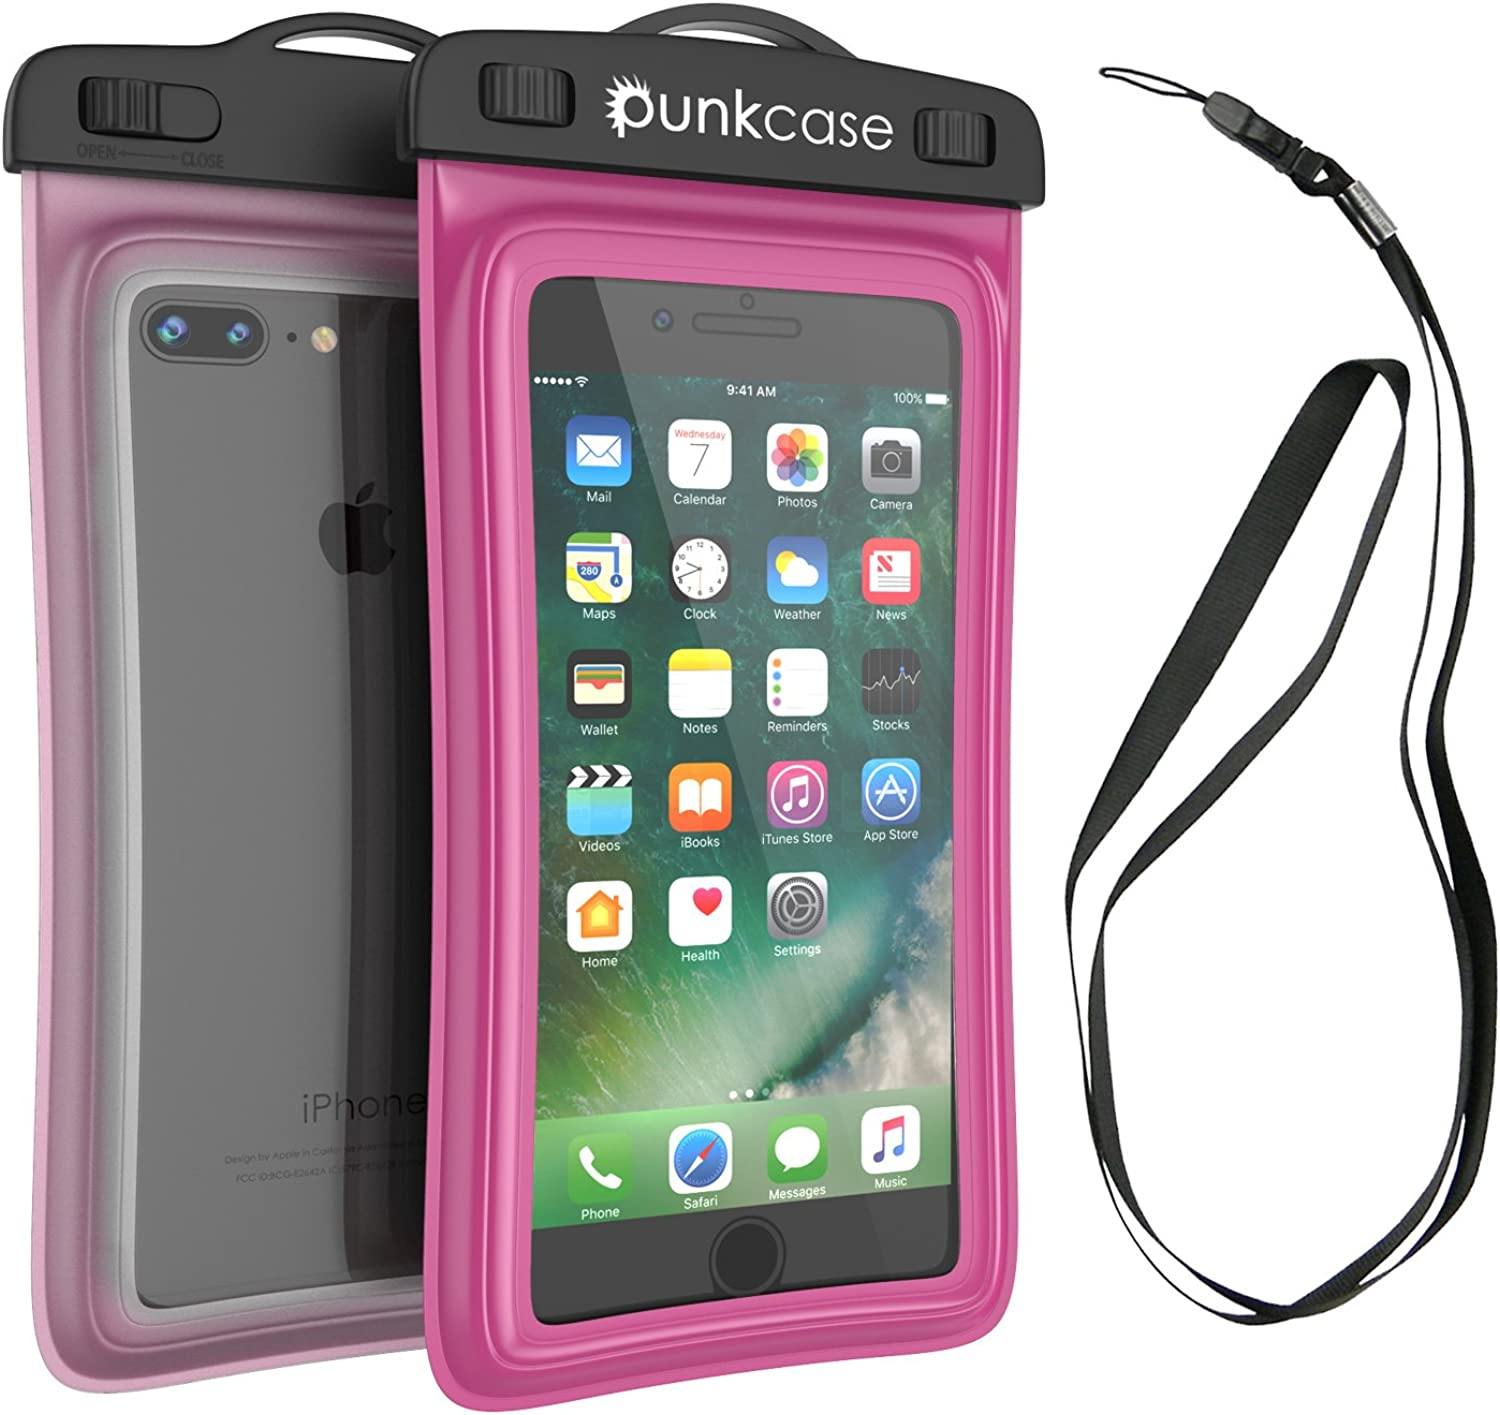 Waterproof Phone Pouch, PunkBag Universal Floating Dry Case Bag for Most Cell Phones incl. iPhone 8 Plus & Samsung Galaxy S9 | Perfect for Keeping Your Cellphone & Valuables Dry and Safe